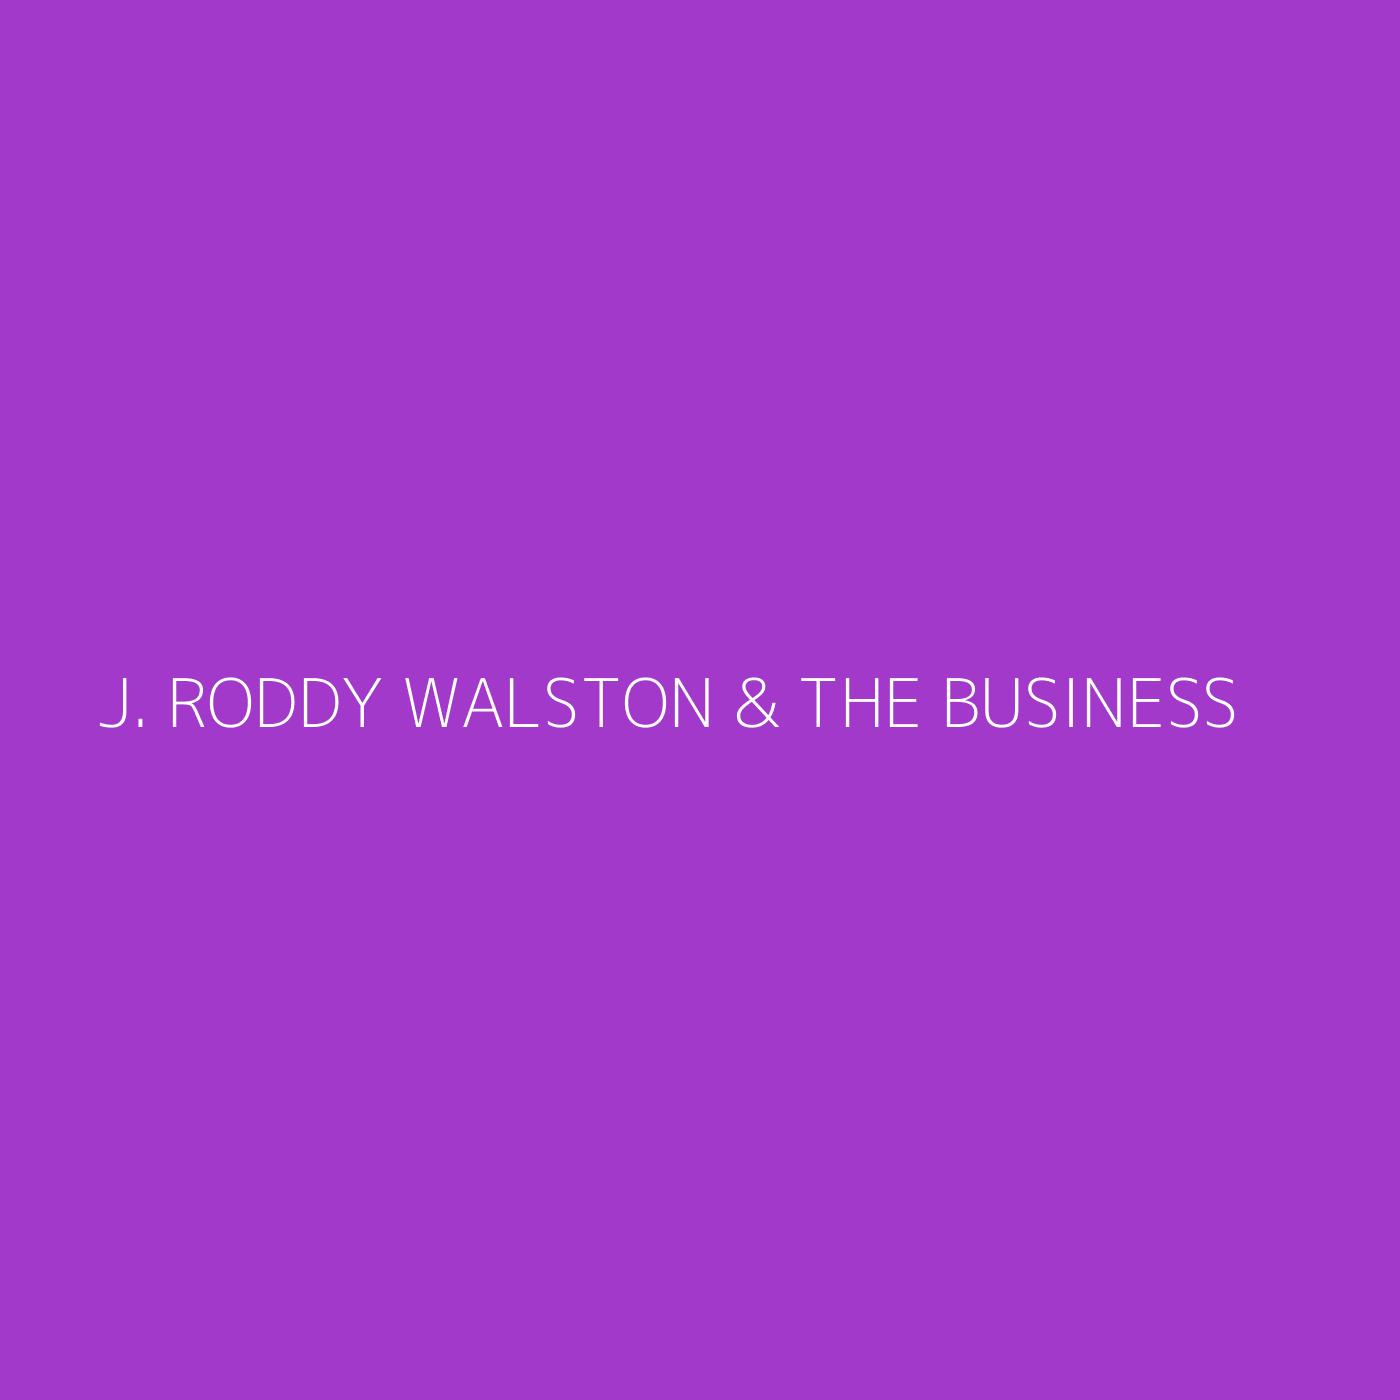 J. Roddy Walston & The Business Playlist Artwork